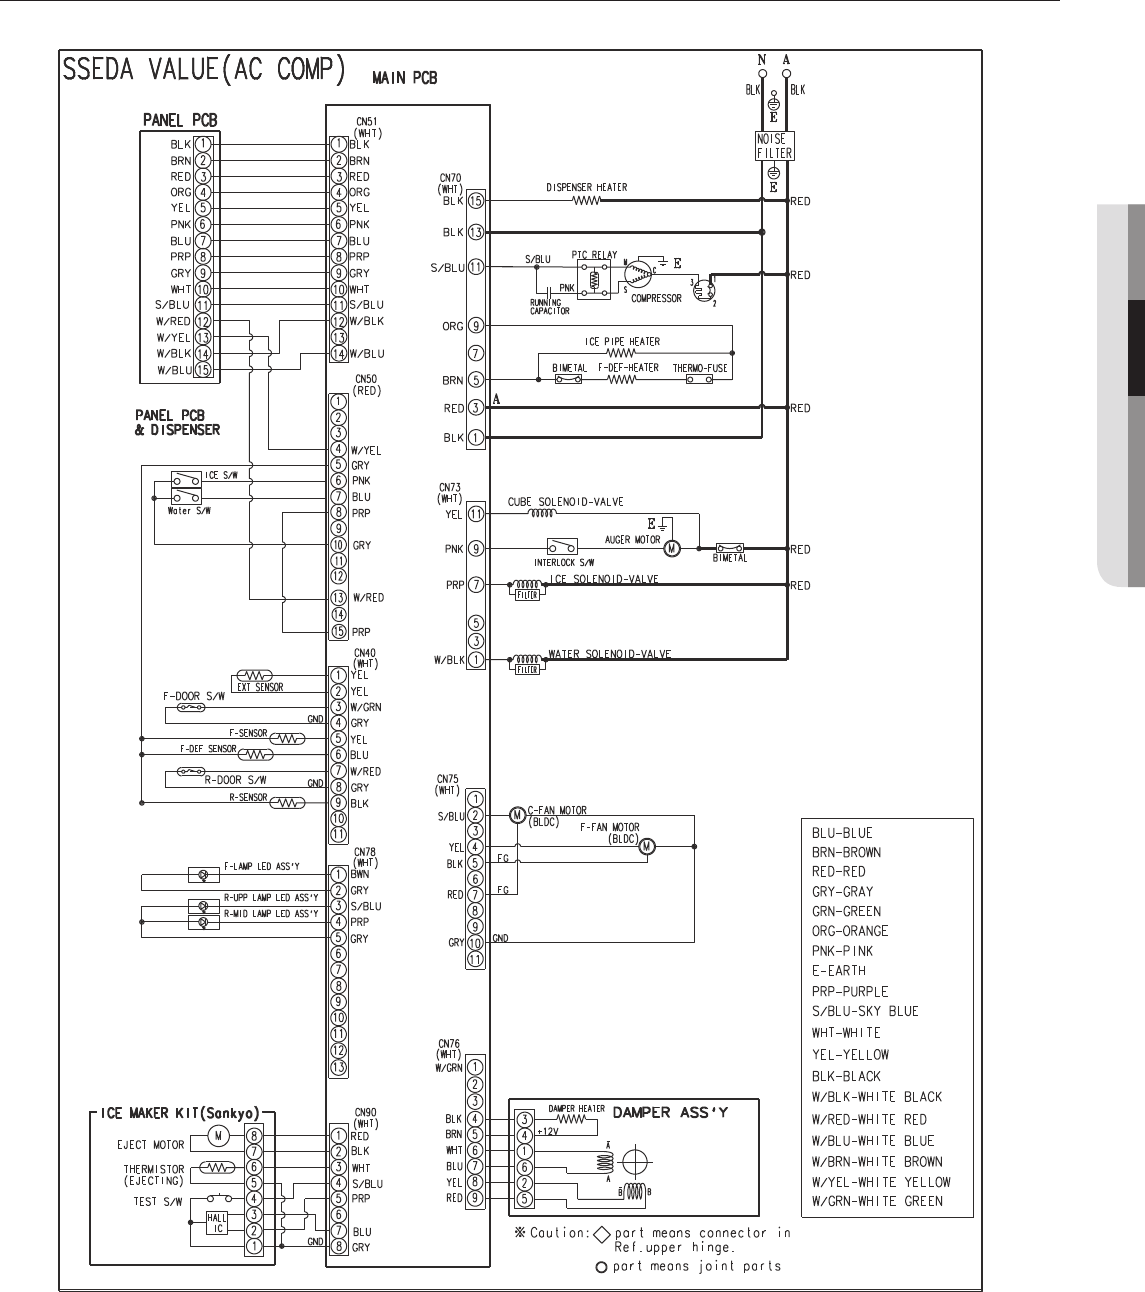 21aa6212 5c03 4539 ac02 99a0885d5c5e bg1f page 31 of paul's tv samsung refrigerator rs261mdwp user manual samsung tv wiring diagram at readyjetset.co